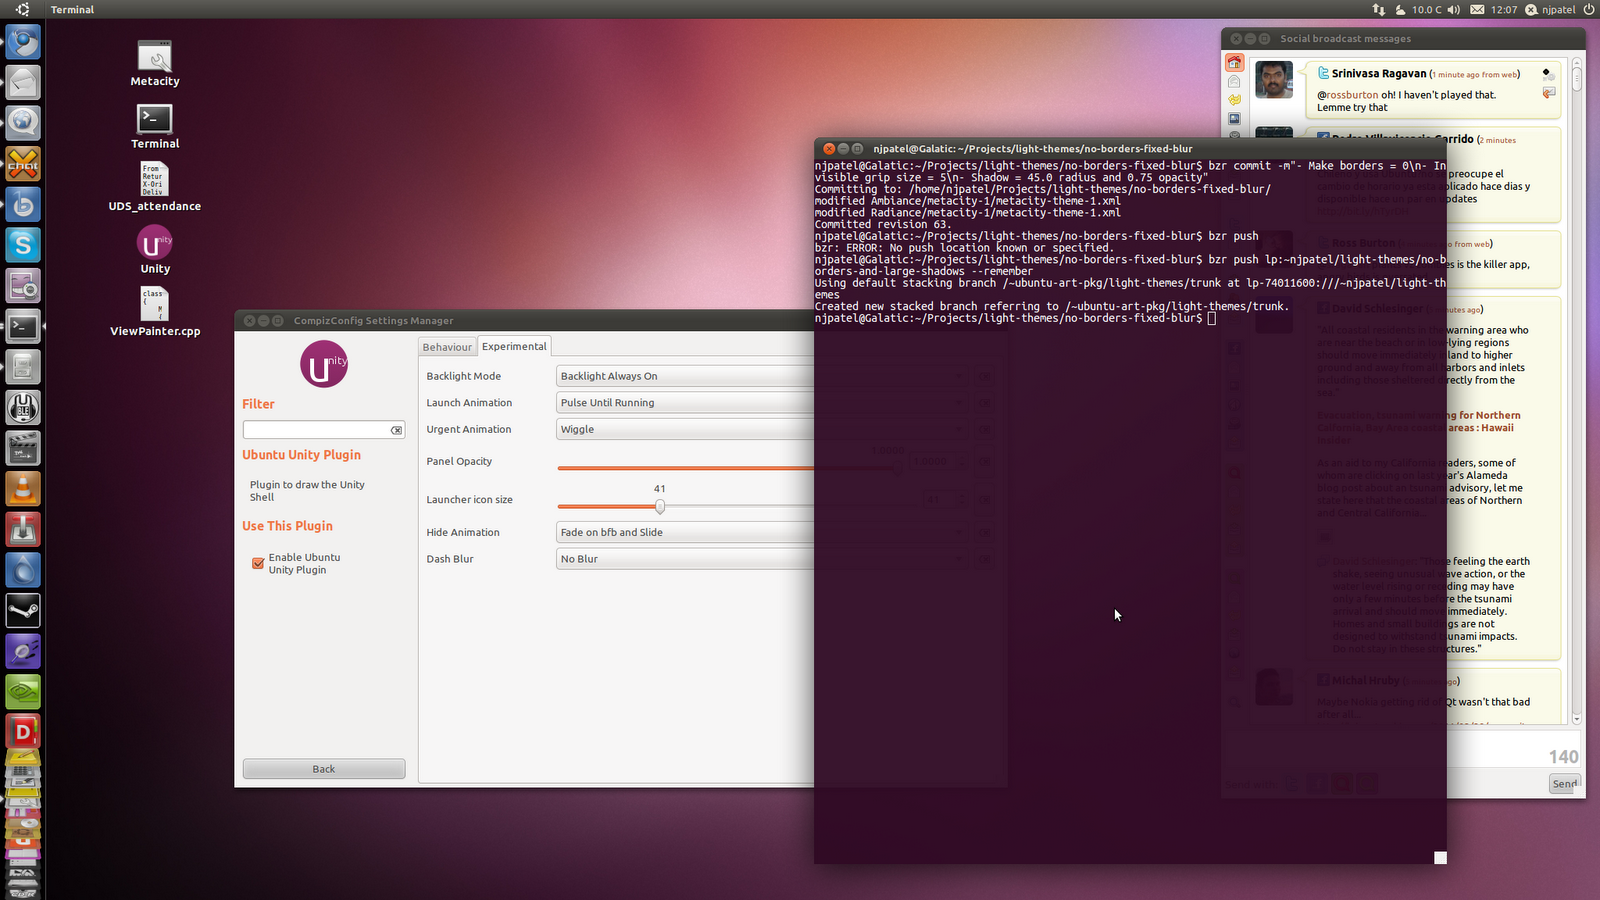 Unity environment in good shape, on track for Ubuntu 11.04